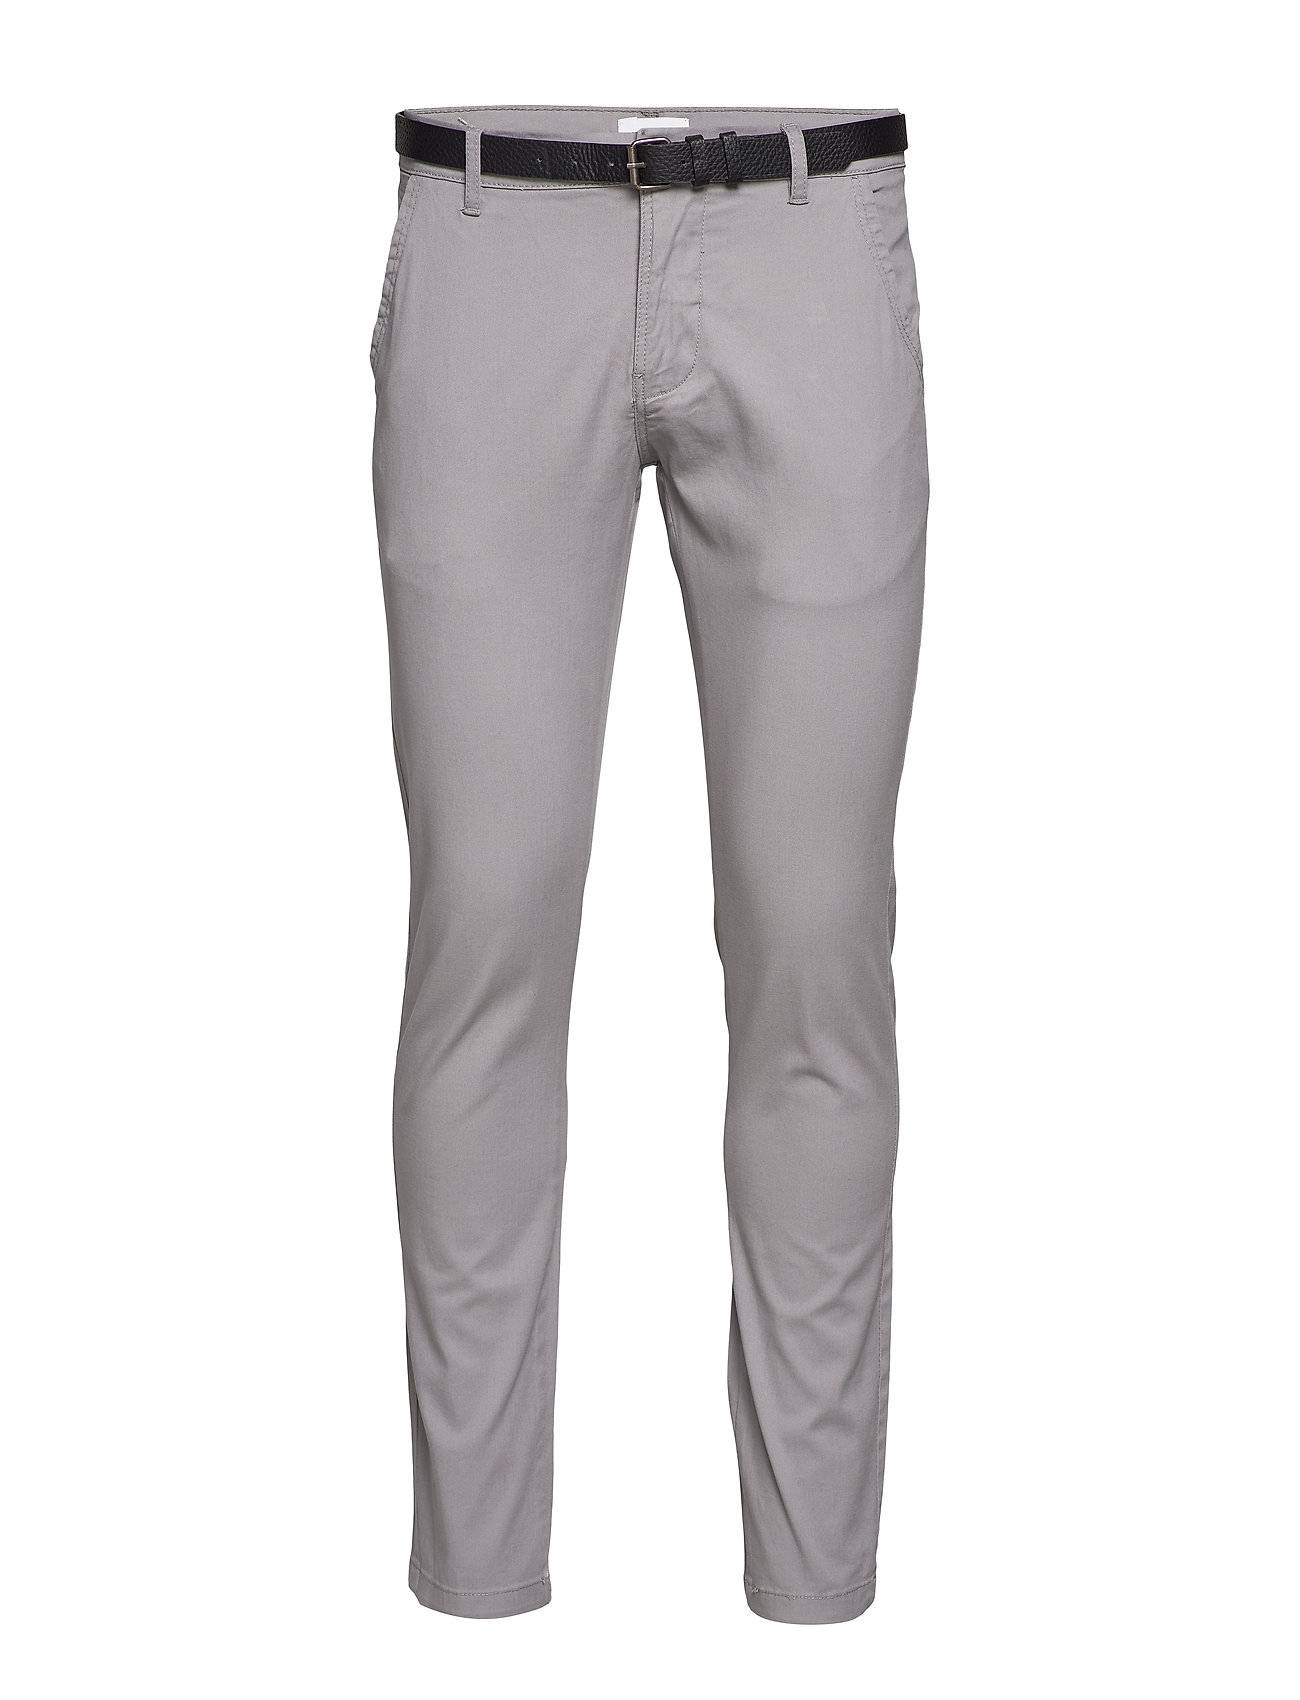 Lindbergh Classic Stretch Chino W. Belt Chinot Housut Hopea Lindbergh